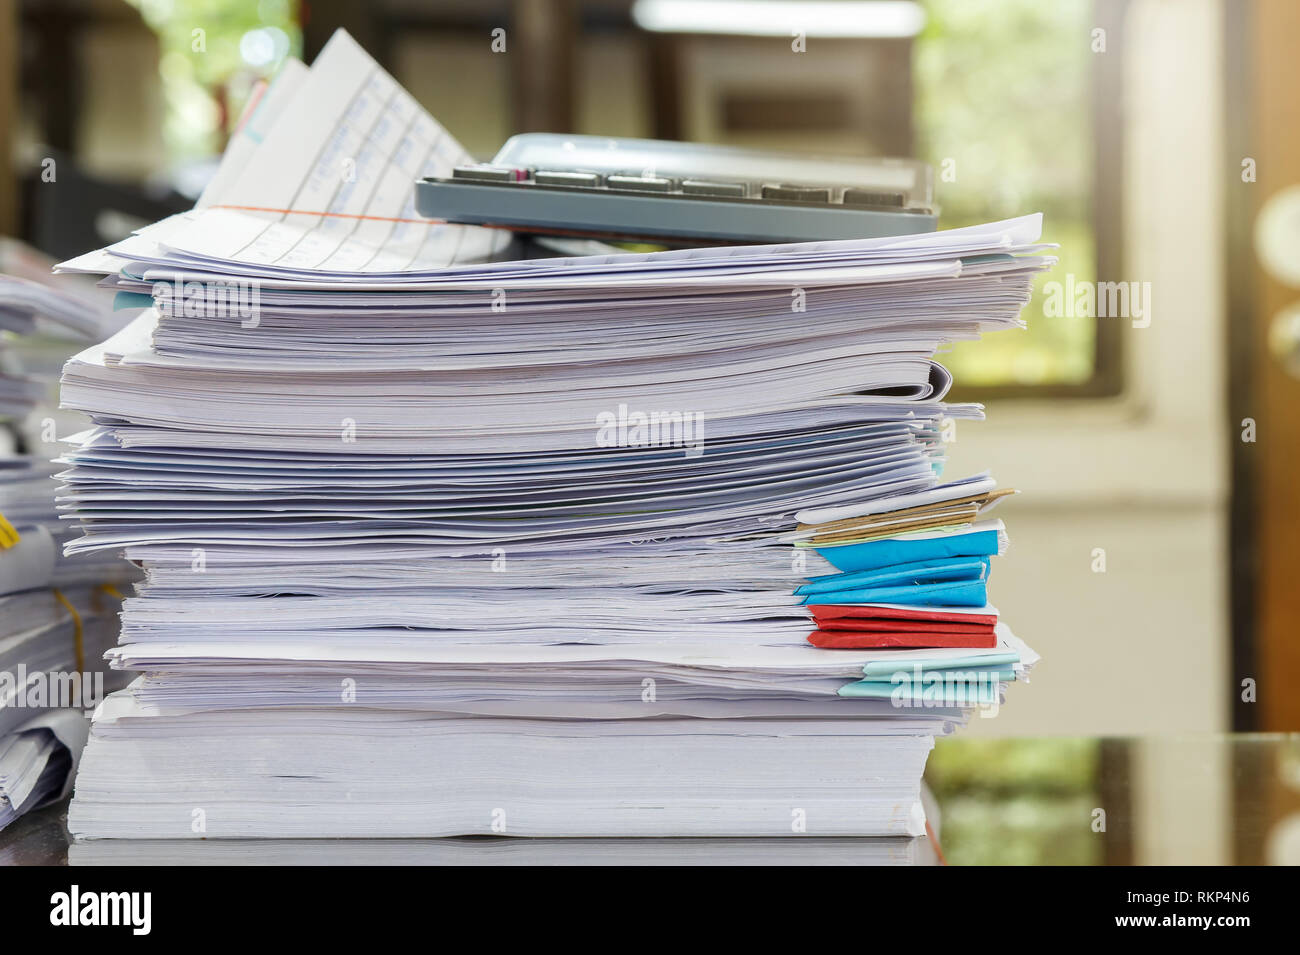 Close up of business papers stack on desk. Pile of unfinished documents on office desk - Stock Image